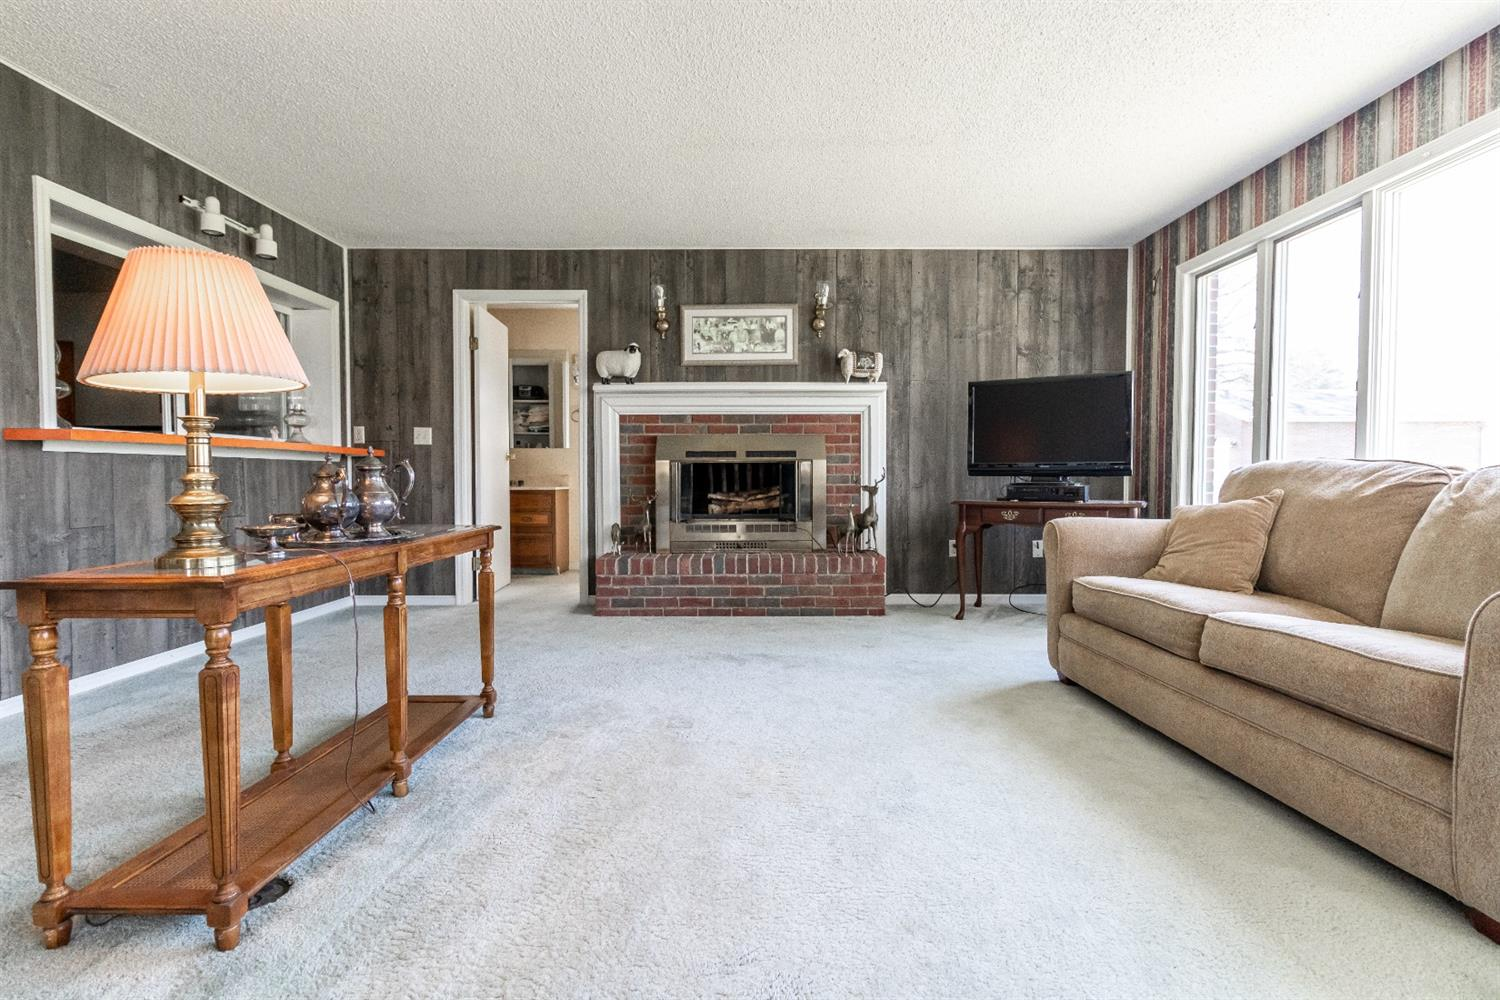 Photo 3 for 316 N Marshall Road Middletown North, OH 45042